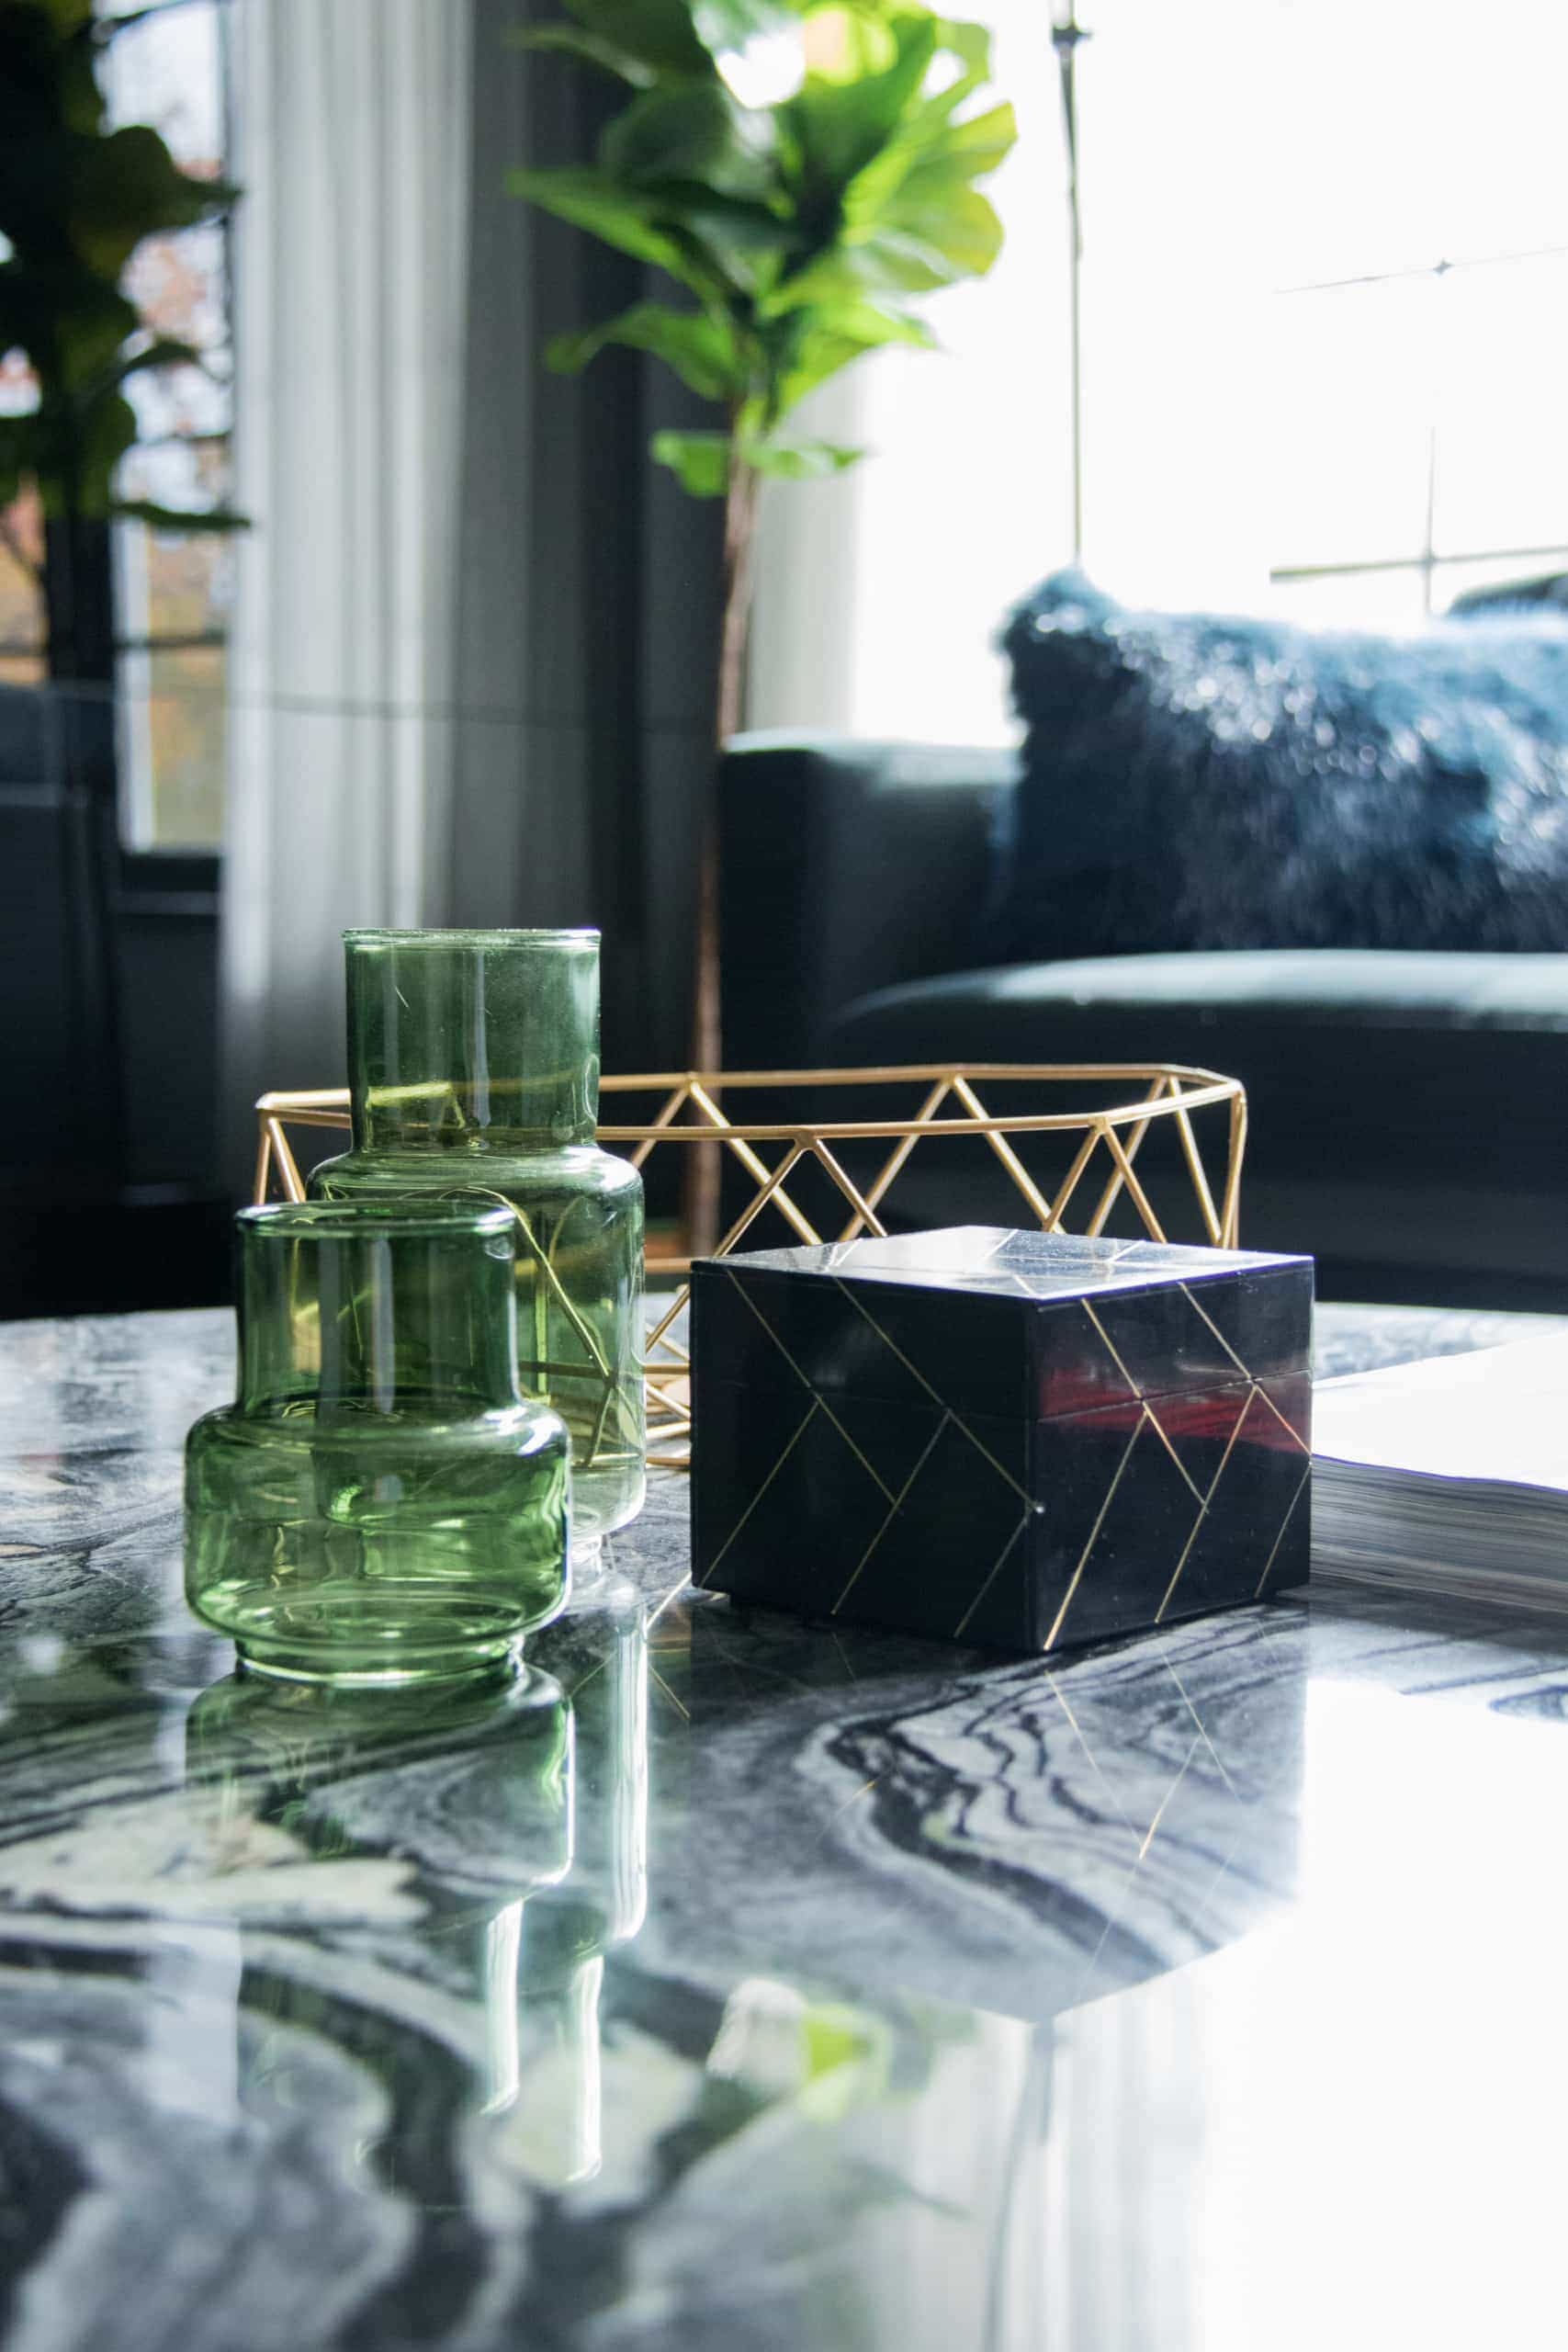 Green, glass pots on a gray coffee table